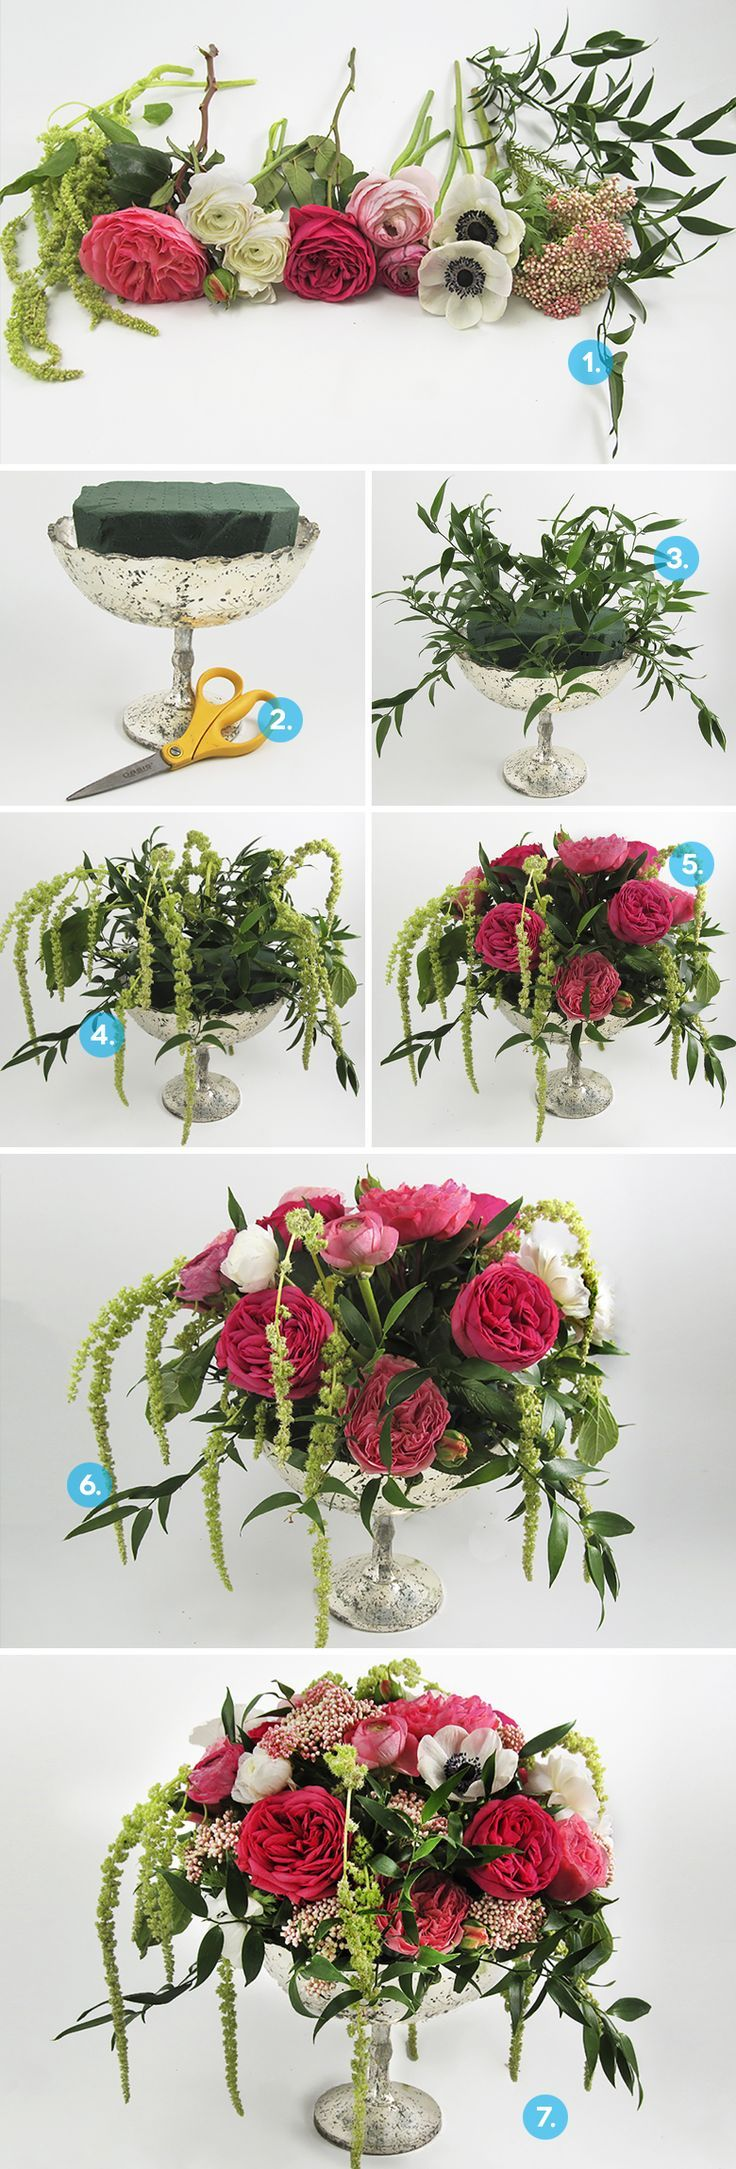 How To: Create a DIY Anemone Centerpiece A Practical Wedding: Blog Ideas for the Modern Wedding, Plus Marriage